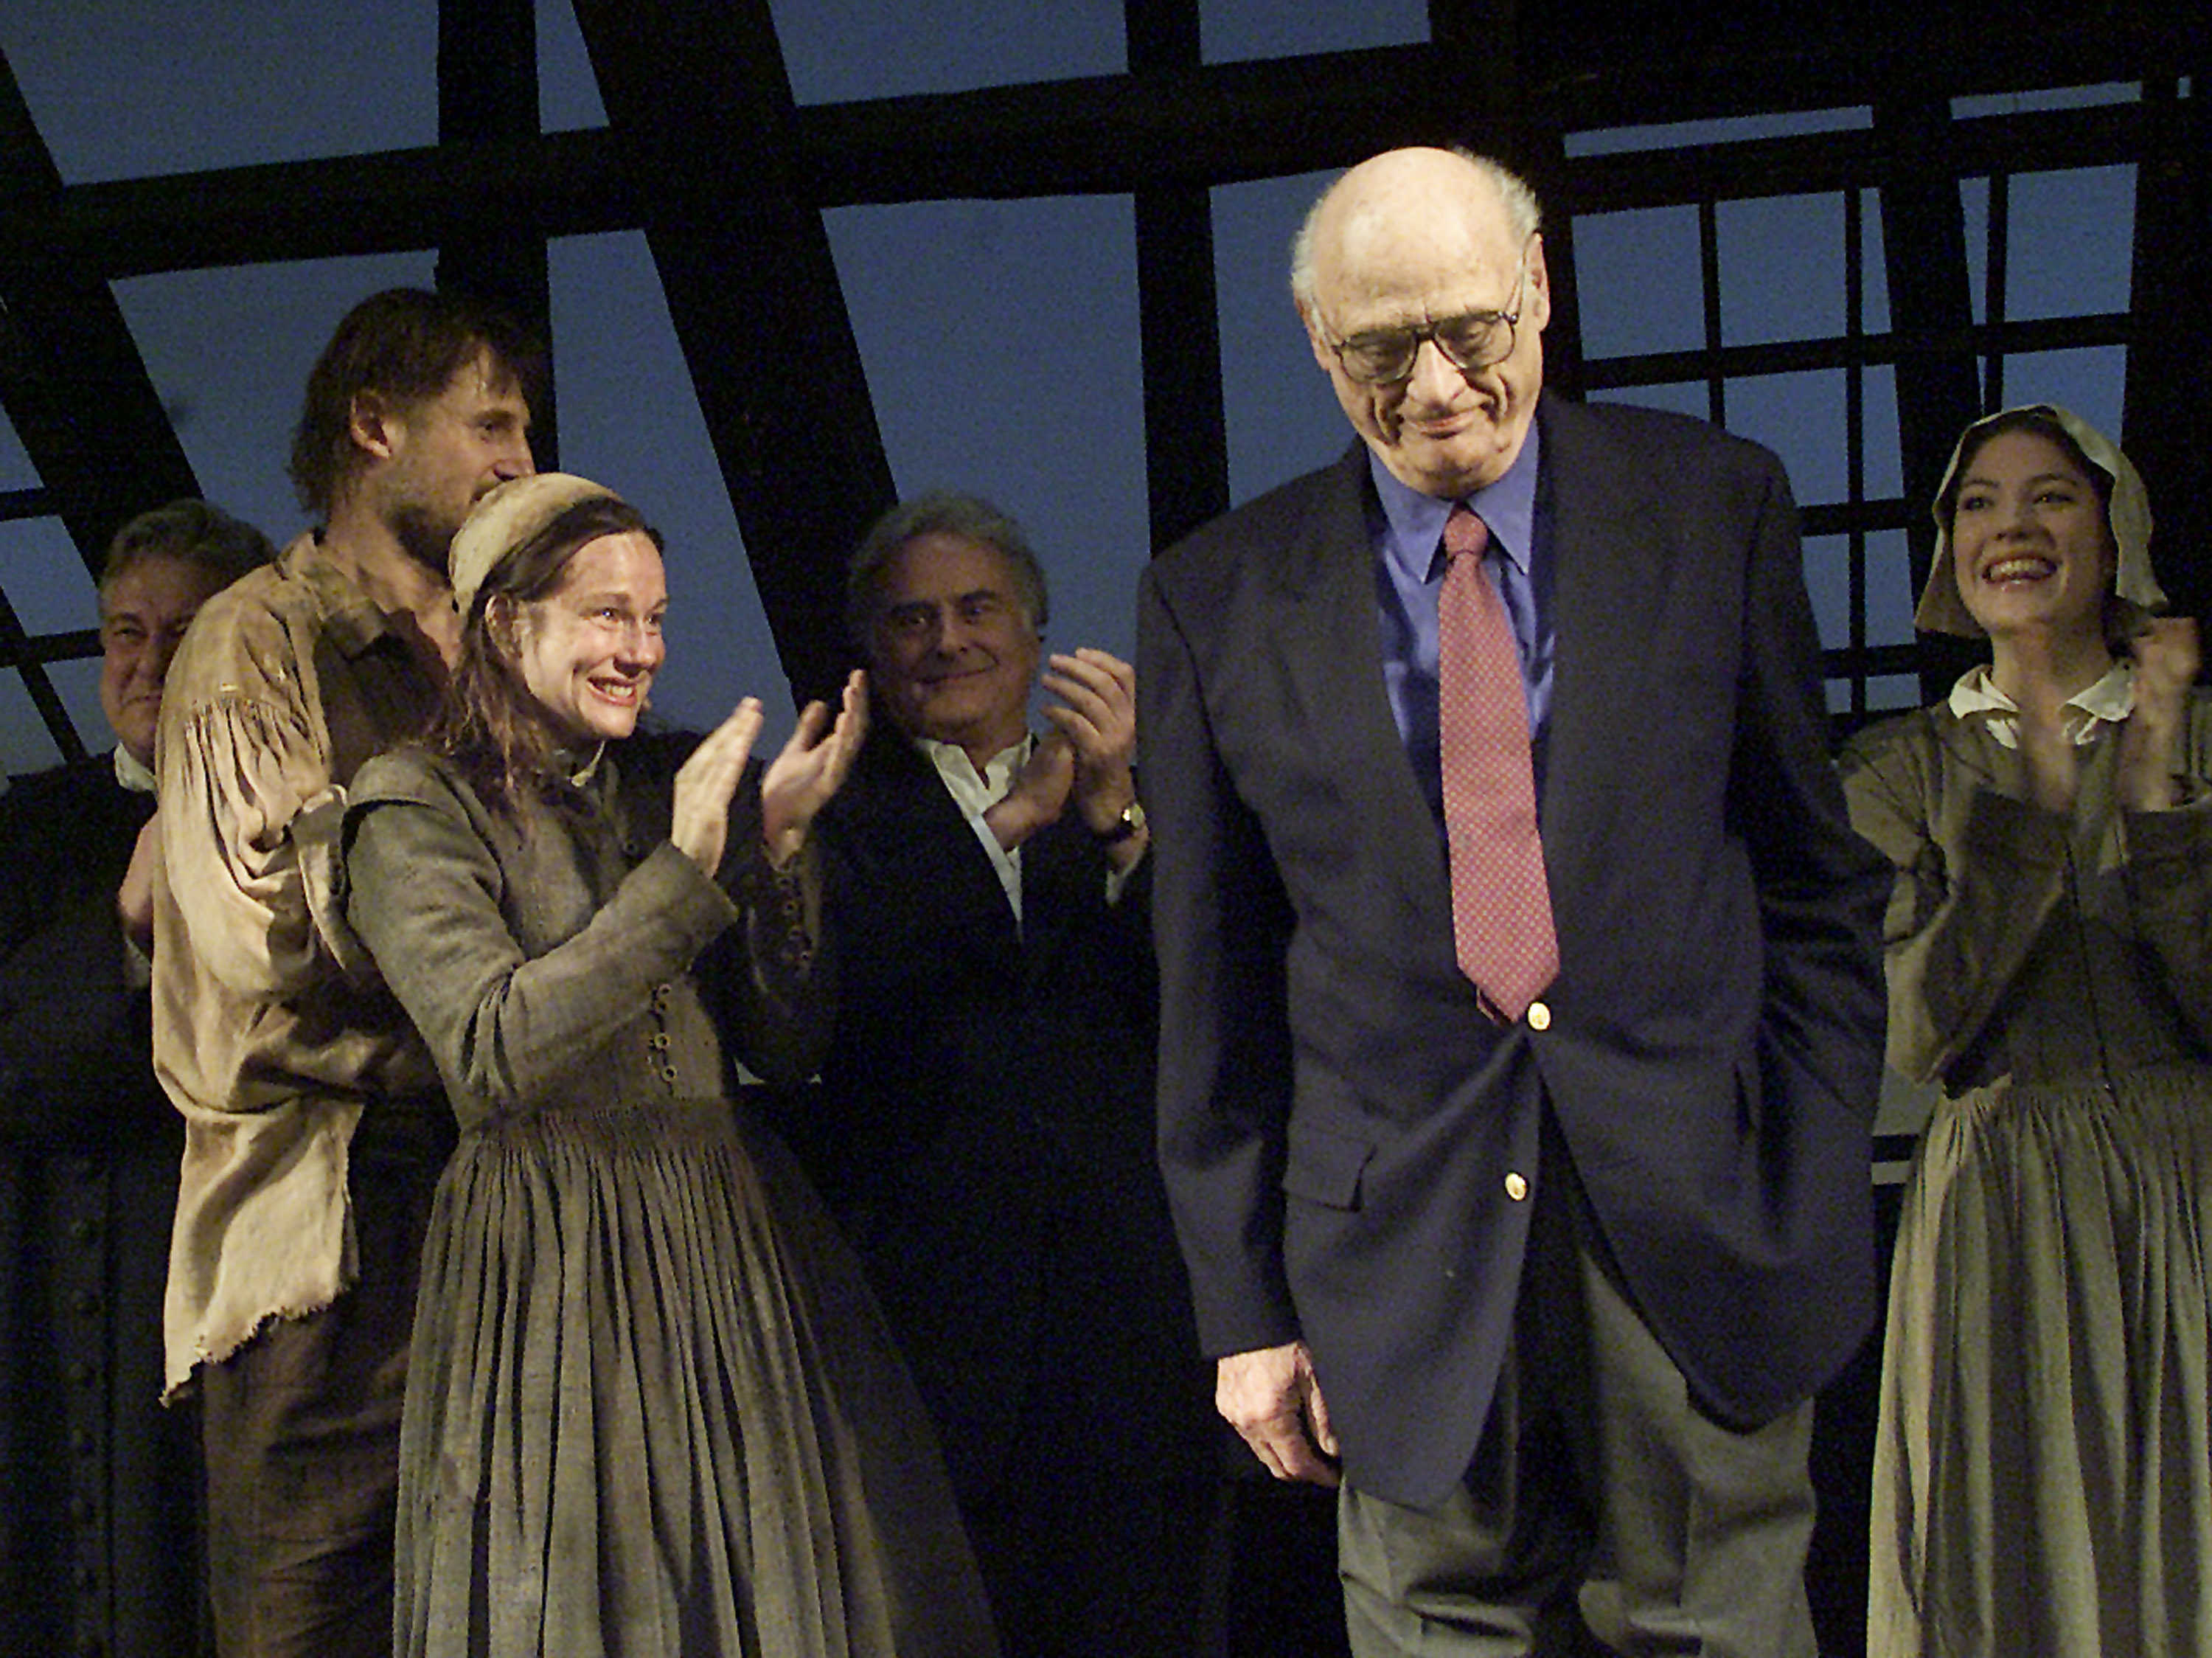 402068 11: Playwright Arthur Miller takes a bow March 7, 2002 during the opening of the play The Crucible at the Virginia Theater in New York City. The play is based on Miller's book. (Photo by Dennis Clark/Getty Images)